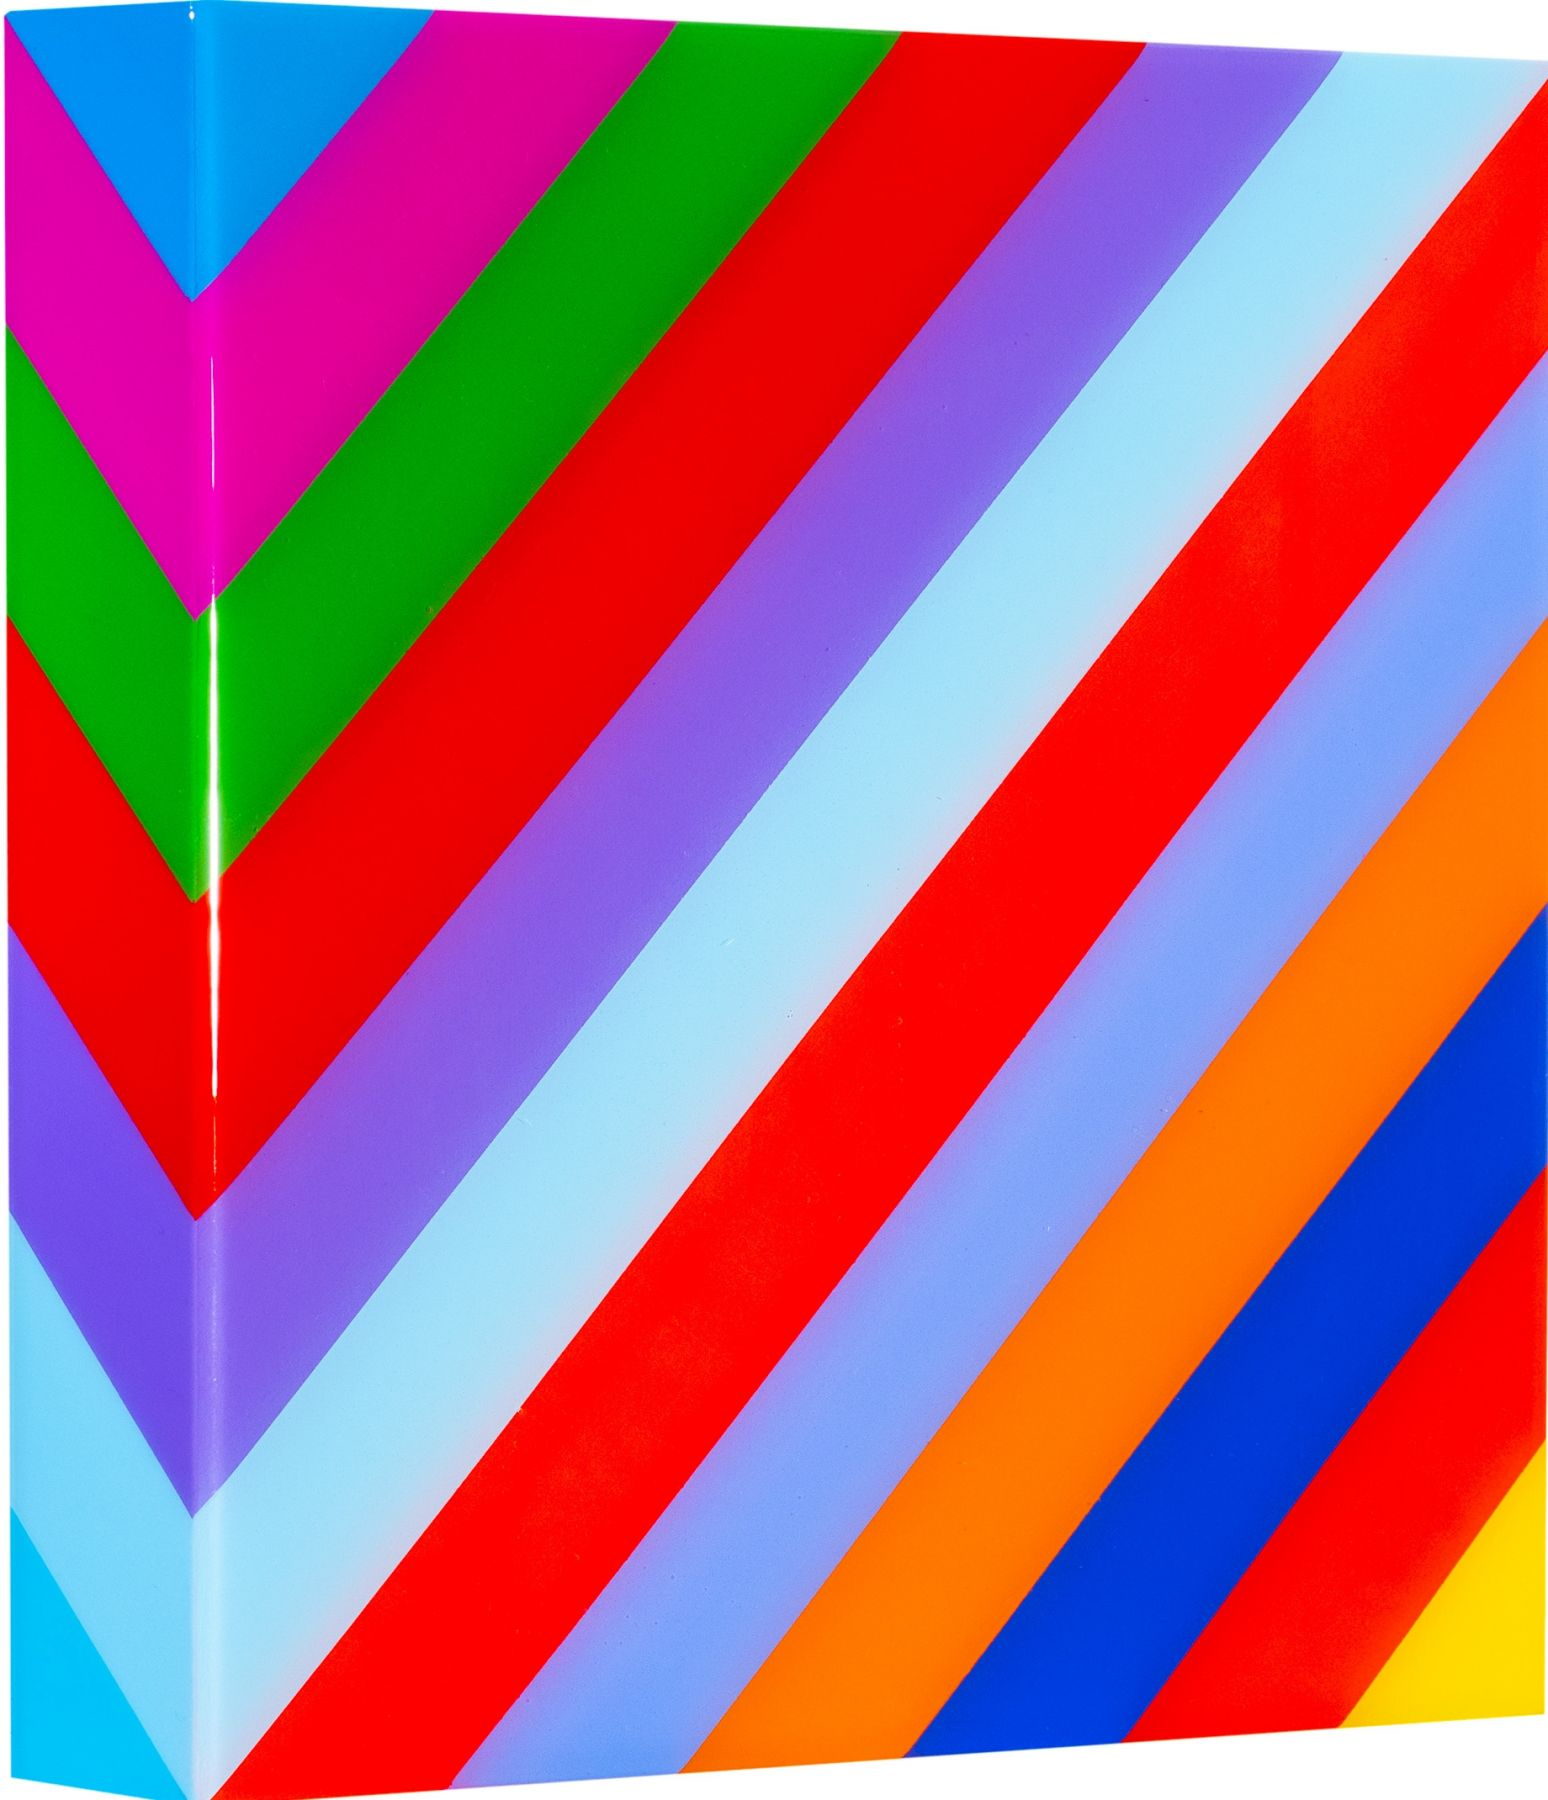 Heidi Spector, My Clarity III, 2019, Liquitex with resin on Birch panel, 12 x 12 x 2 inches, Signed, titled and dated on the verso, Square panel with bright and colorful vertical lines set in a glass-like surface, Heidi Spector creates geometric minimalist art inspired by musical rhythms that are composed of repetitive shapes in candy-like colors that vibrate.